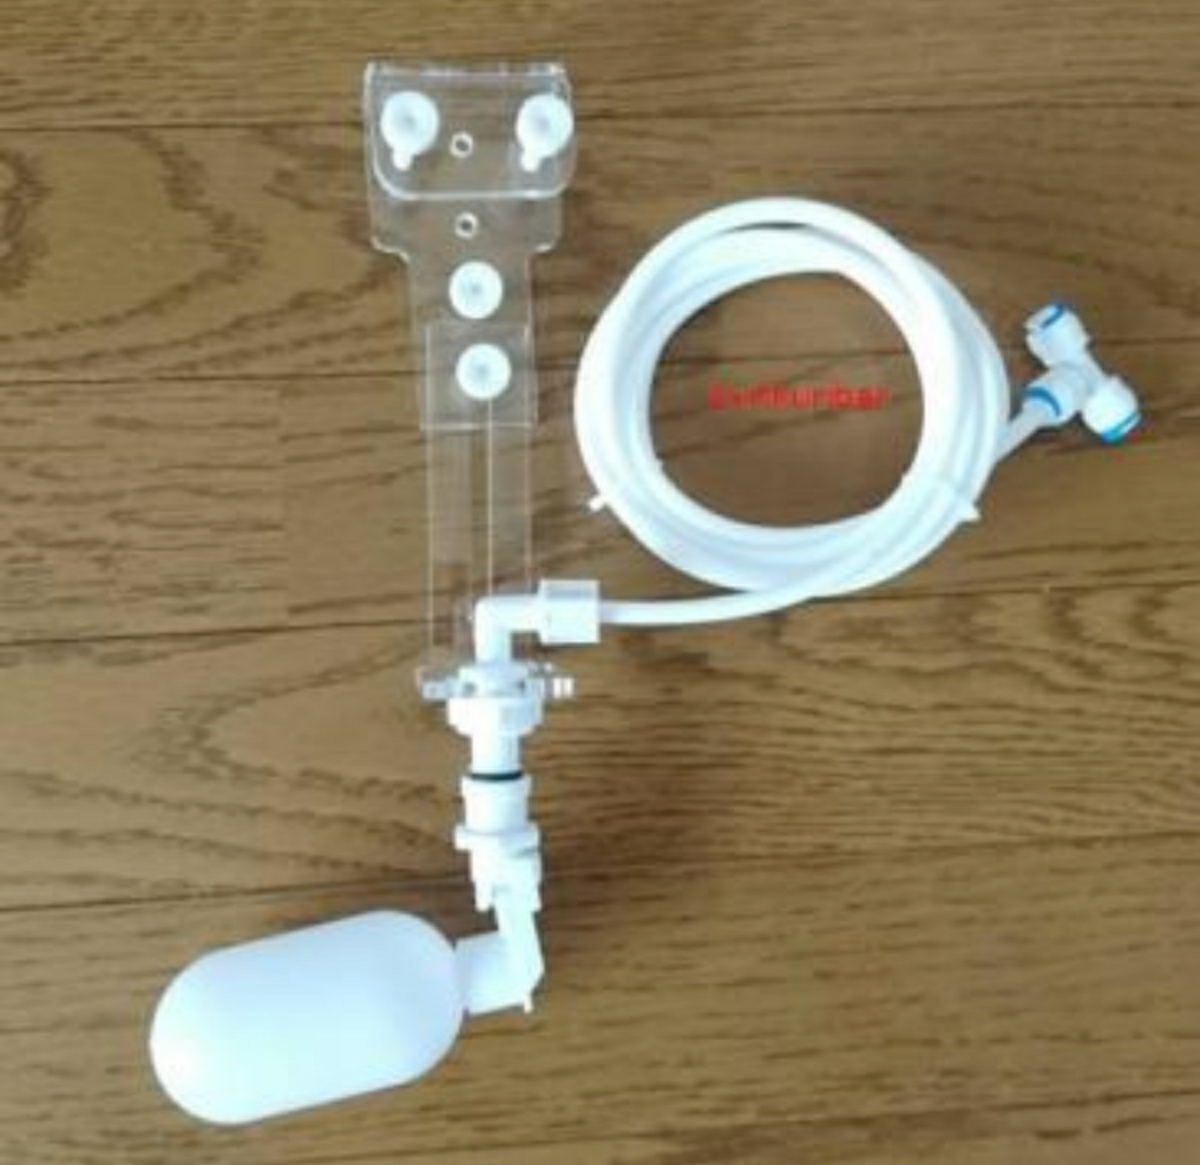 * CoralBox considerably convenience automatic water supply equipment auto water filler -( float type ) holder attaching